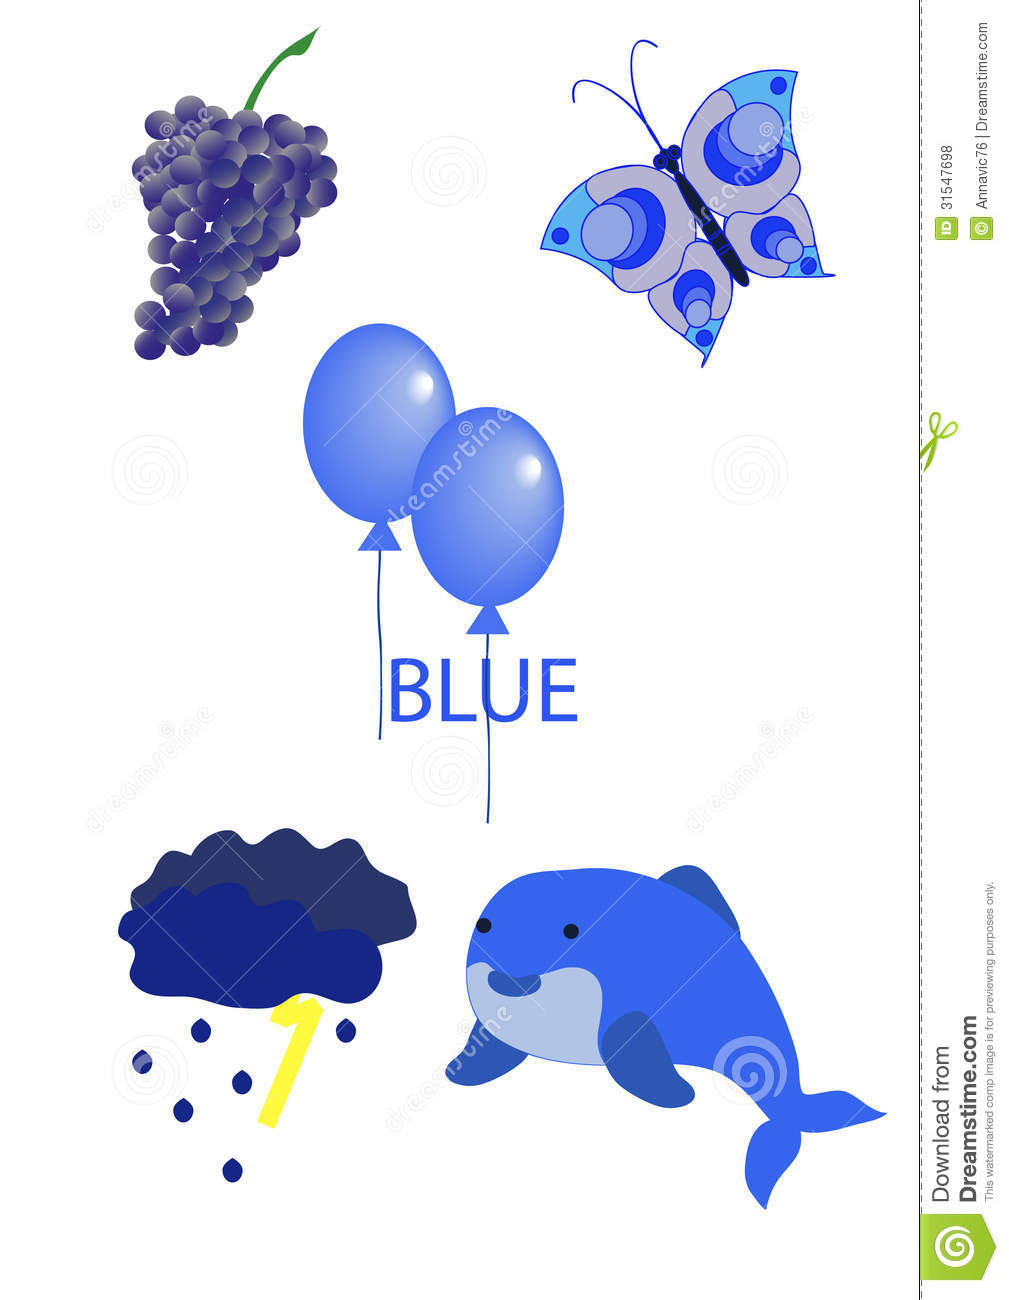 blue objects clipart - photo #36